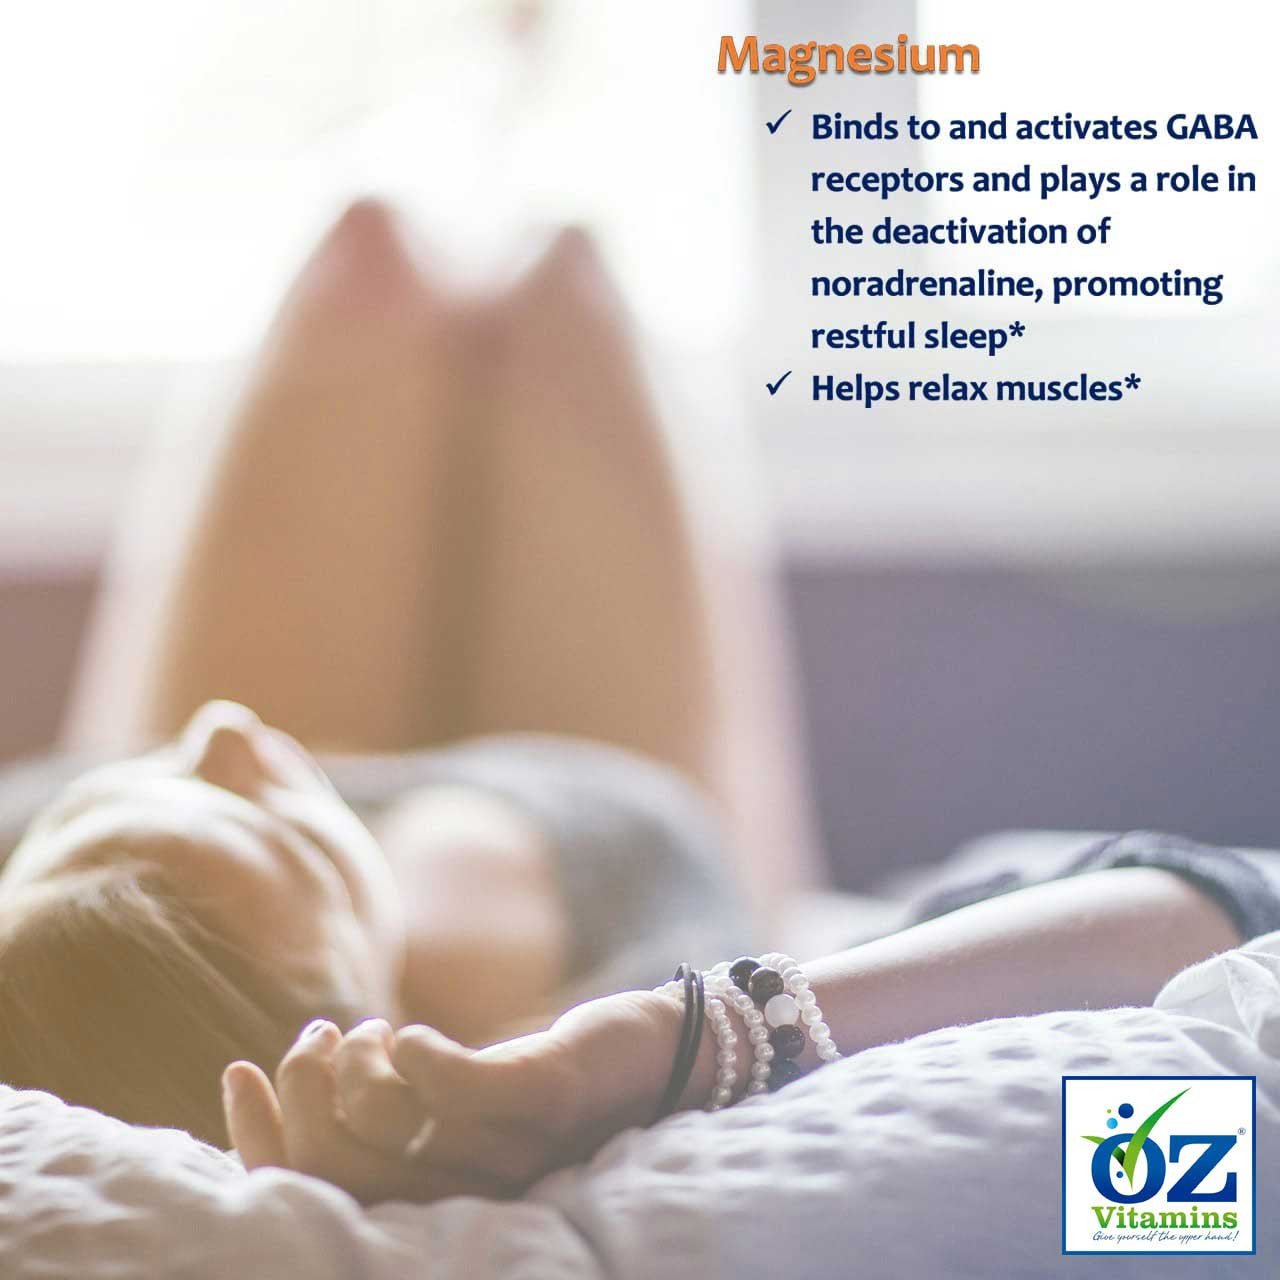 Oz Vitamins Better Sleep contains Magnesium 250mg/day that binds to and activates GABA receptors and plays a role in the deactivation of noradrenaline, promoting restful sleep. Magnesium can help relax muscles.